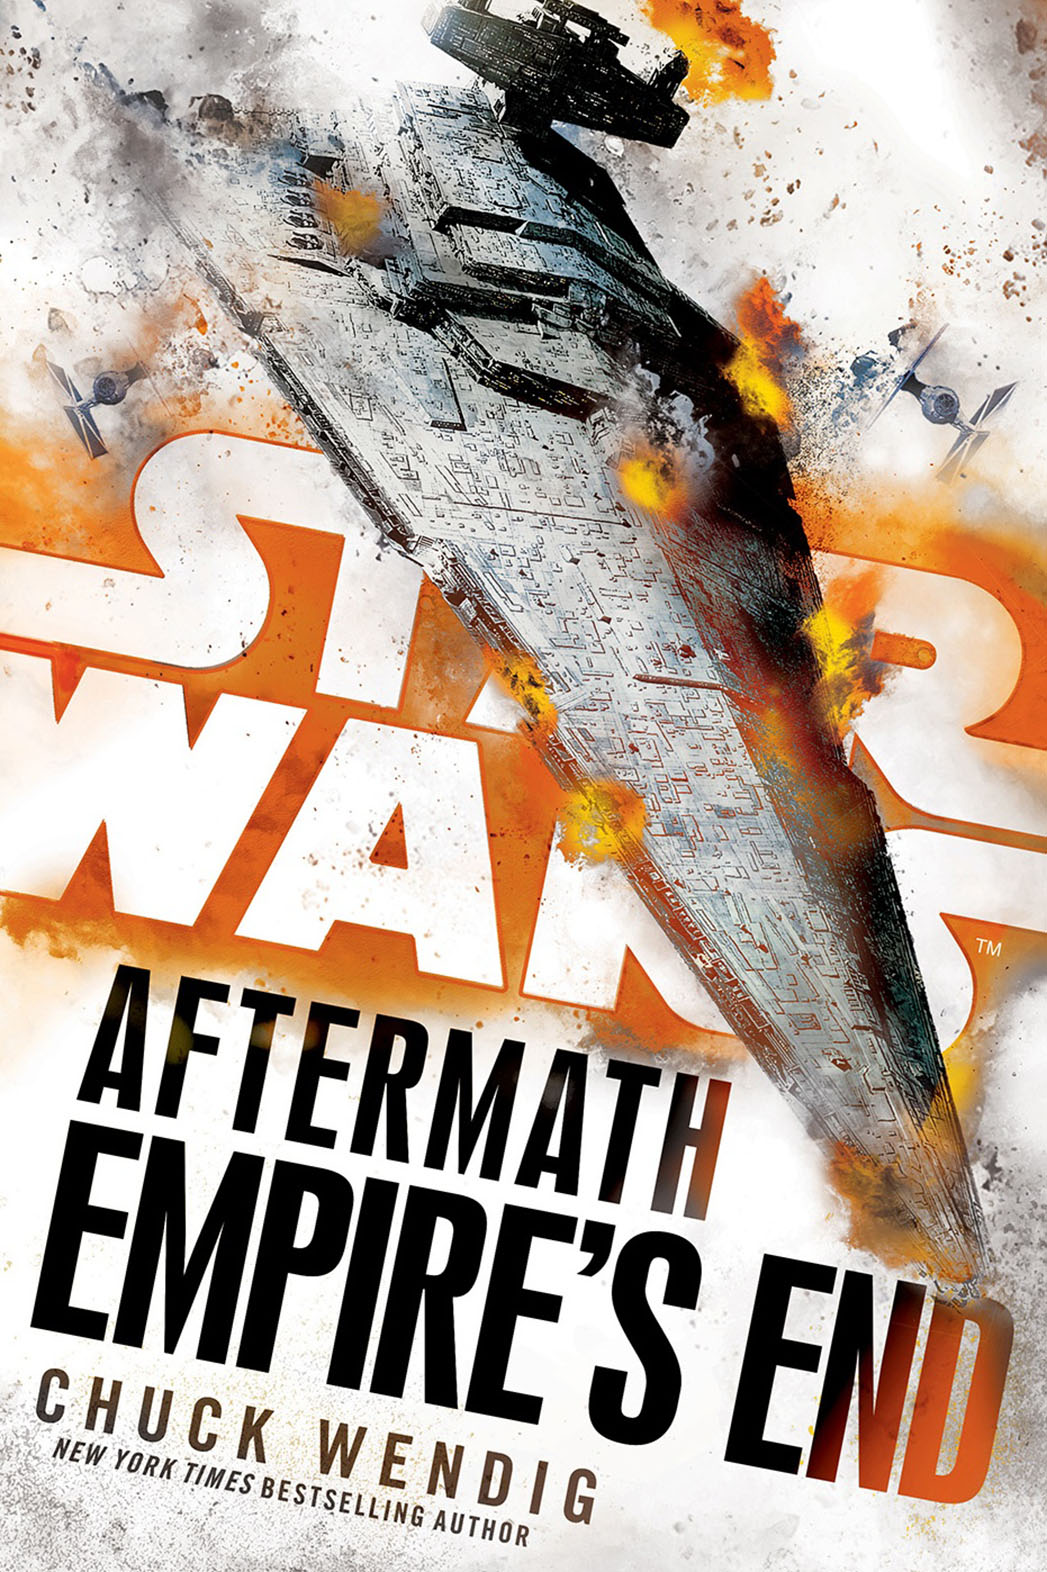 Star Wars Aftermath Empire's End Cover - Publicity - P 2016